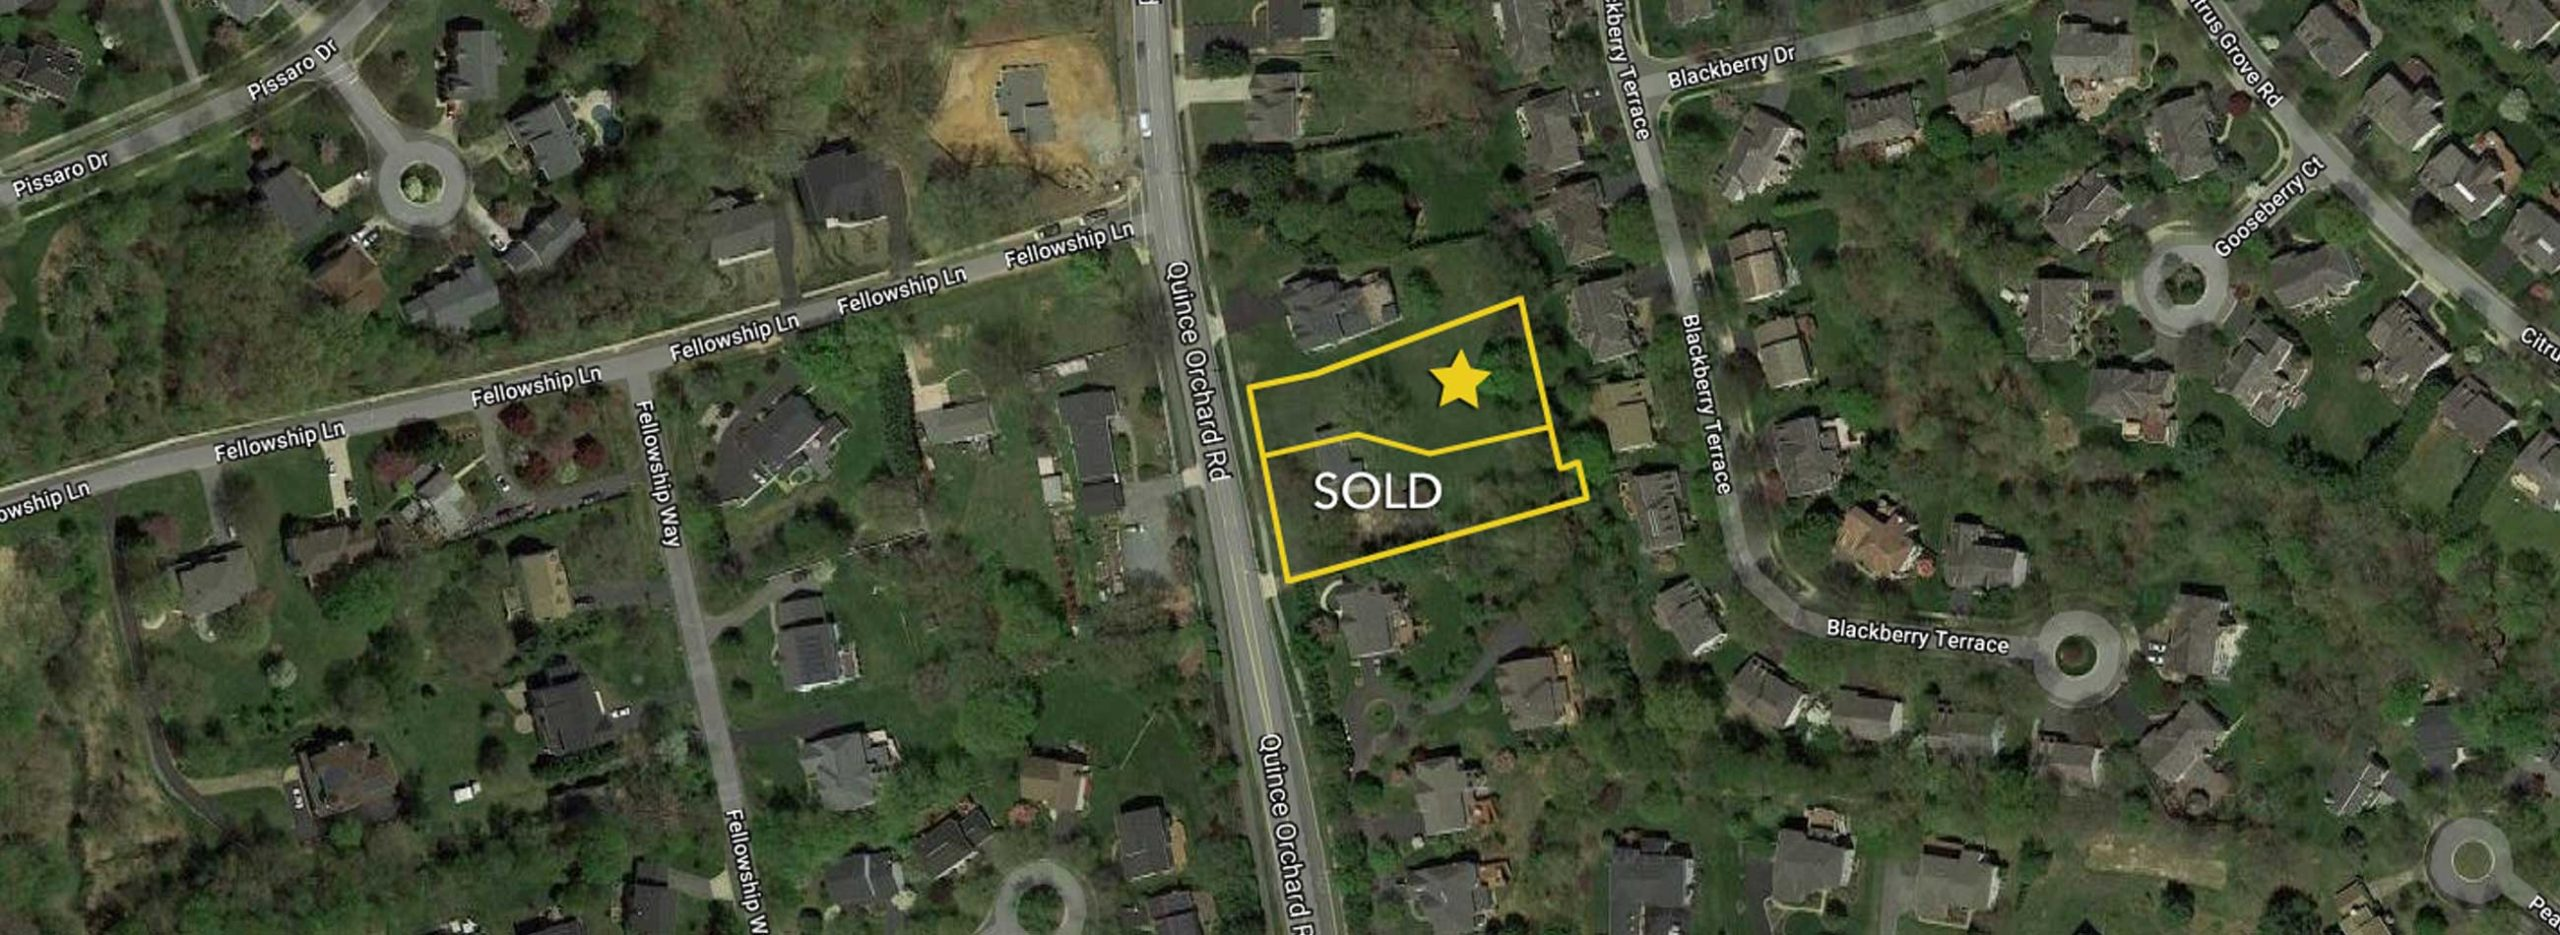 15615-Quince_Orchard_Rd-aerial